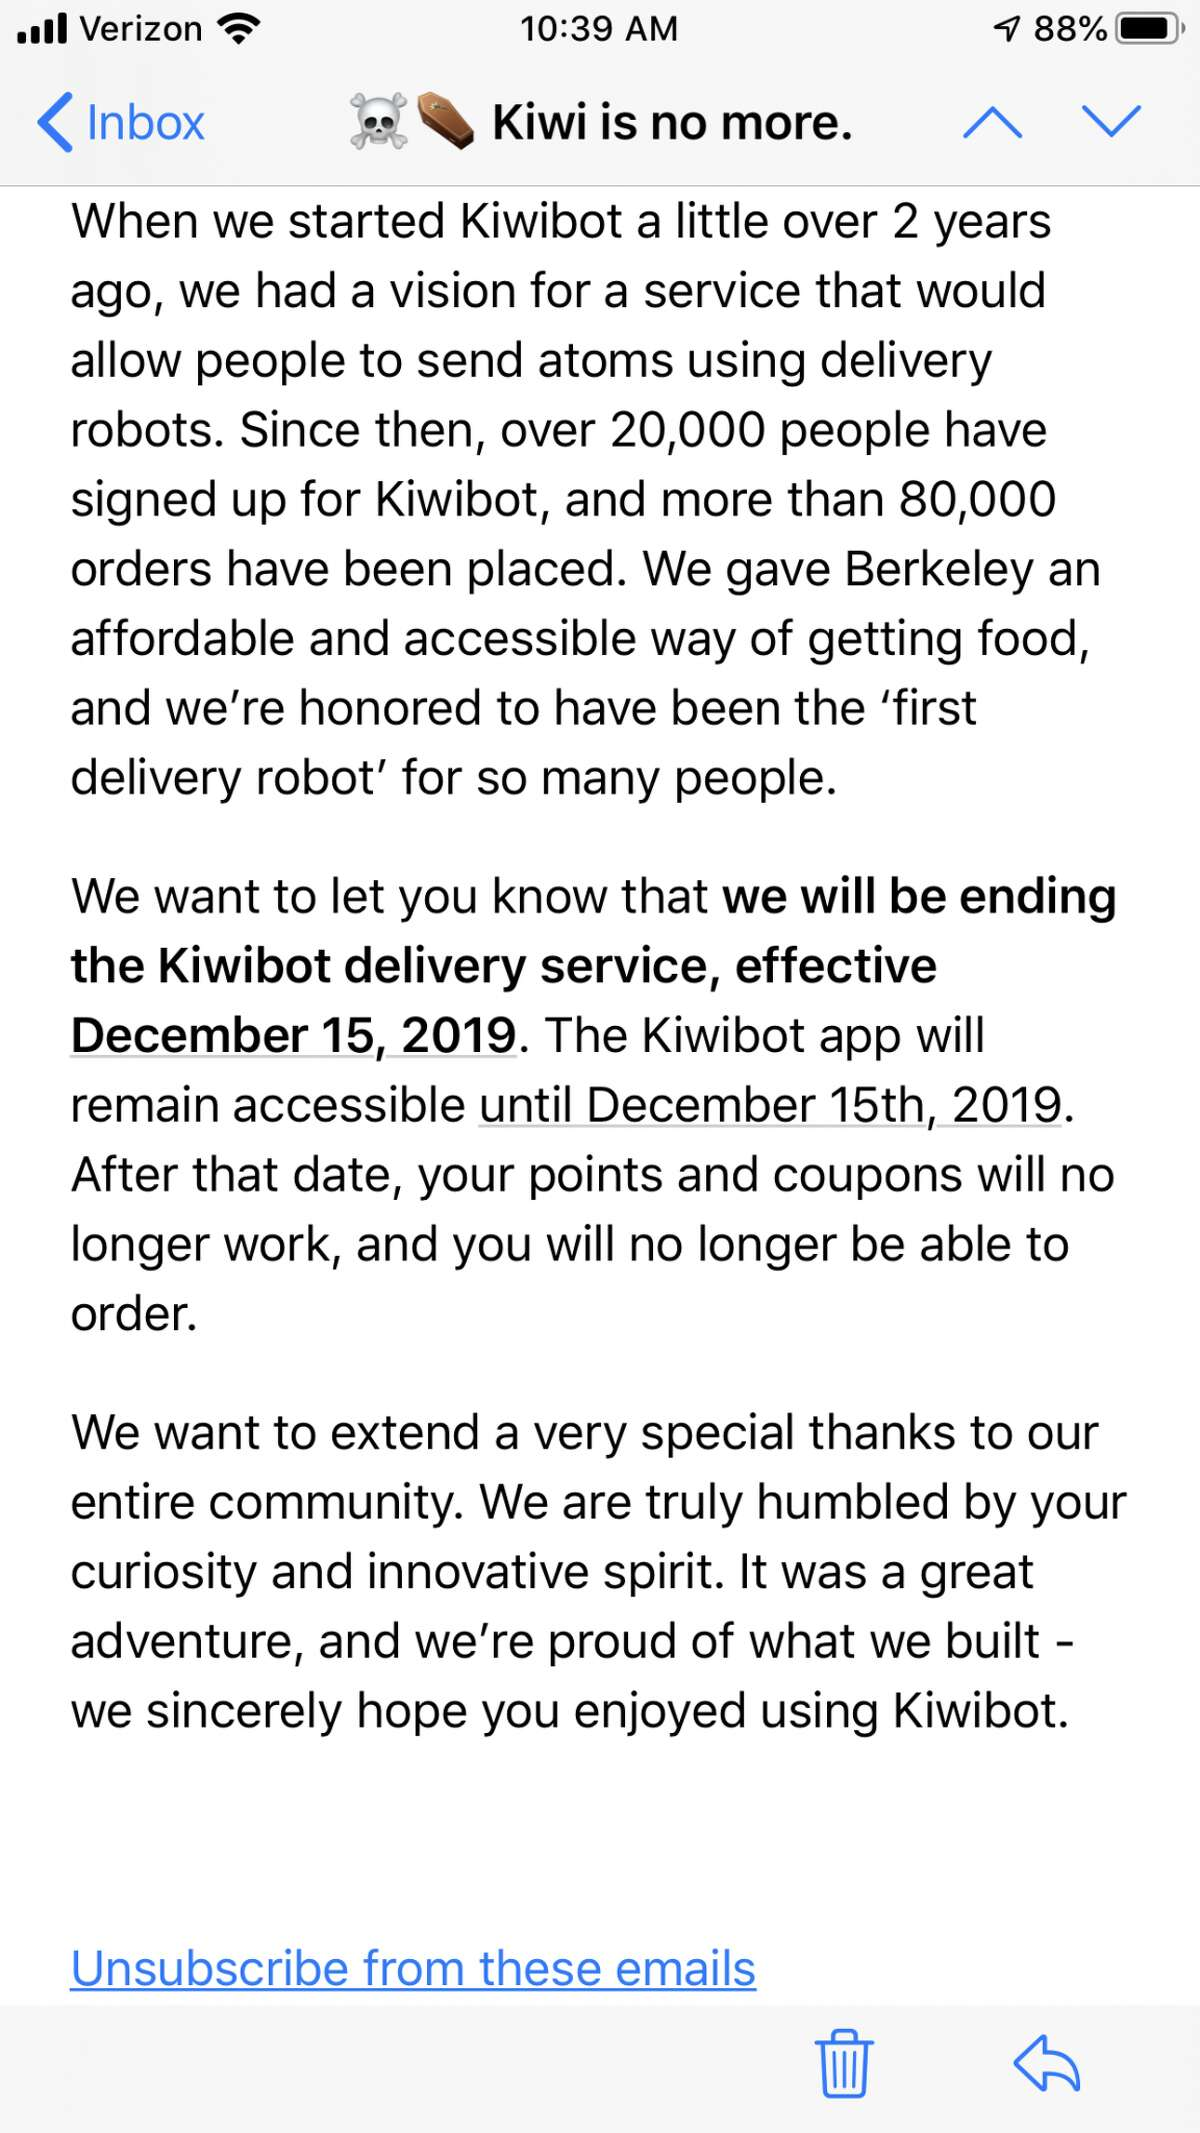 Kiwibot sent out an email on Monday, Dec. 2 that led customers to believe the company was shutting down.